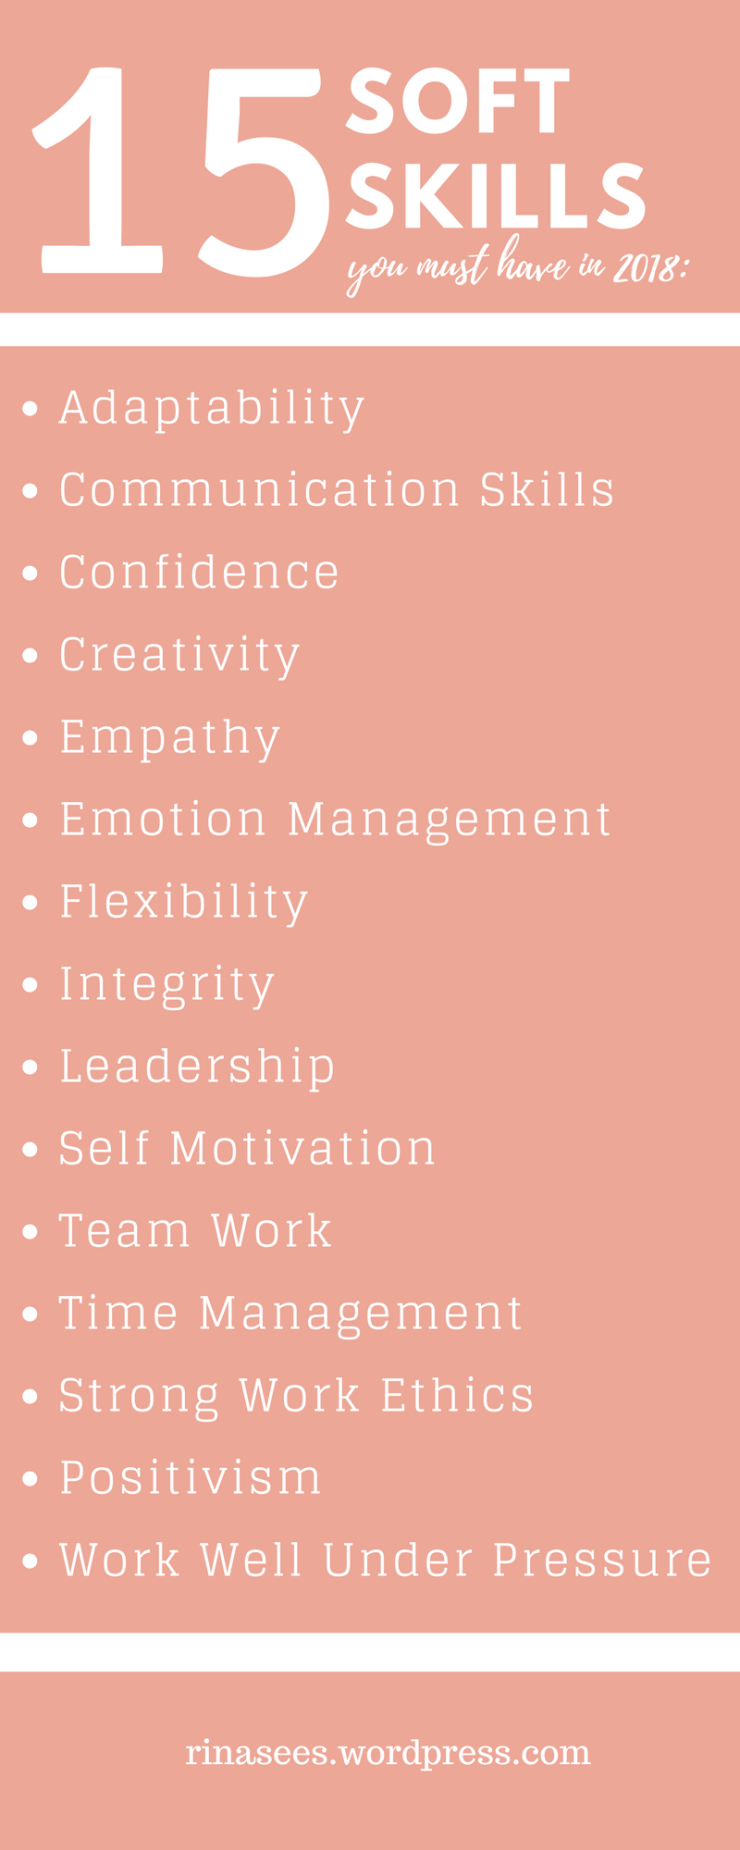 Soft Skills That MUST Be Part of Your Resume in 2018 (With